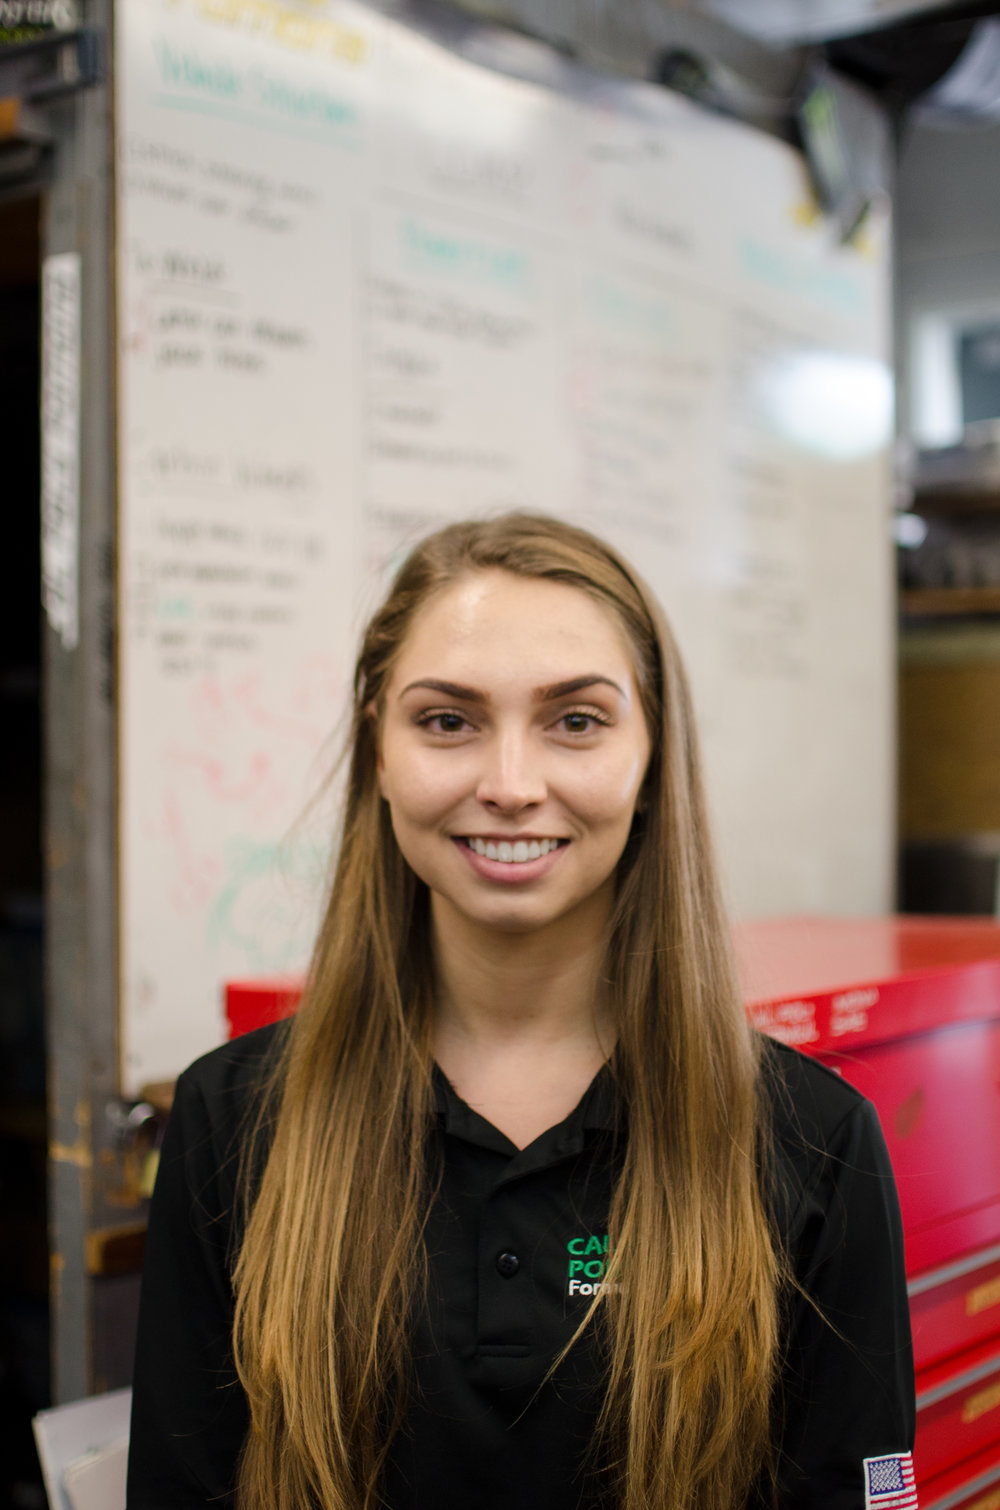 Jenna Kadlec - Headers/Muffler Captain jmkadlec@cpp.edu